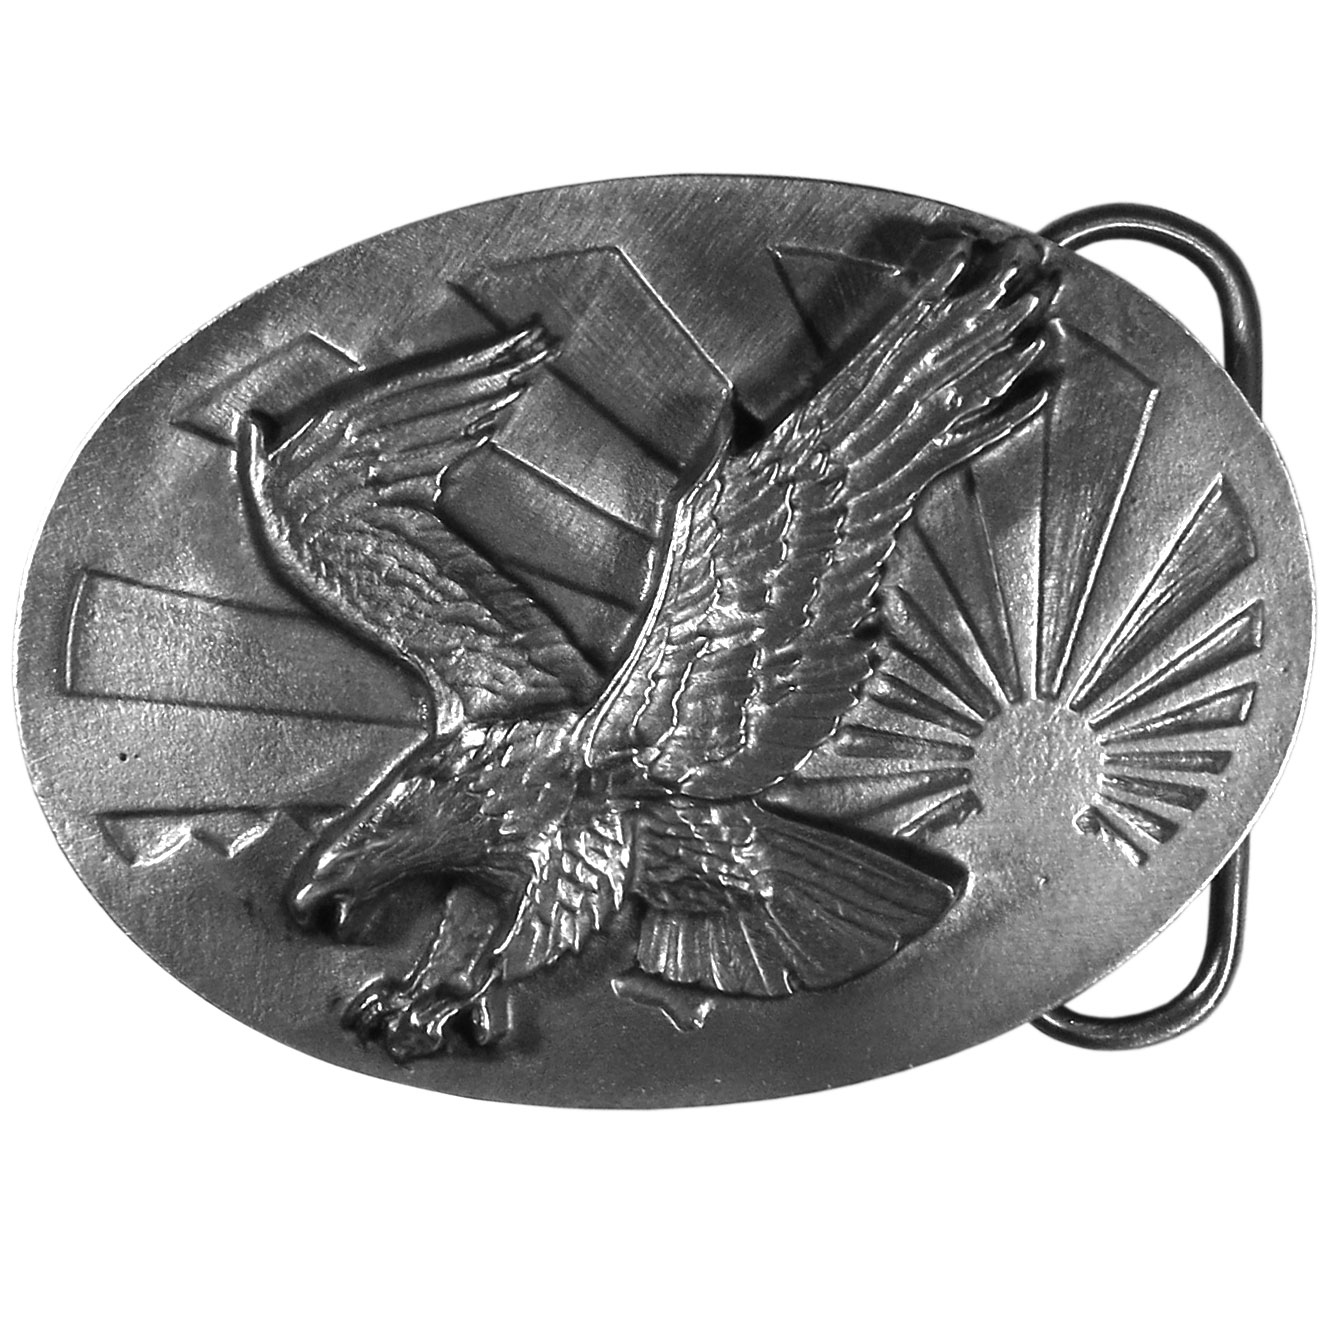 "Eagle and Sun Antiqued Belt Buckle - ""This belt buckle has an eagle with it's claws outstretched as if catching prey.  There is a stylized sunshine in the background.  On the back are the words, """"Come dance with the west wind and touch all the mountain tops, sail o'er the canyons and up to the stars; And reach for the heavens and hope for the future, and all that we can be and not what we are.""""  John Denver from The Eagle and The Hawk."""